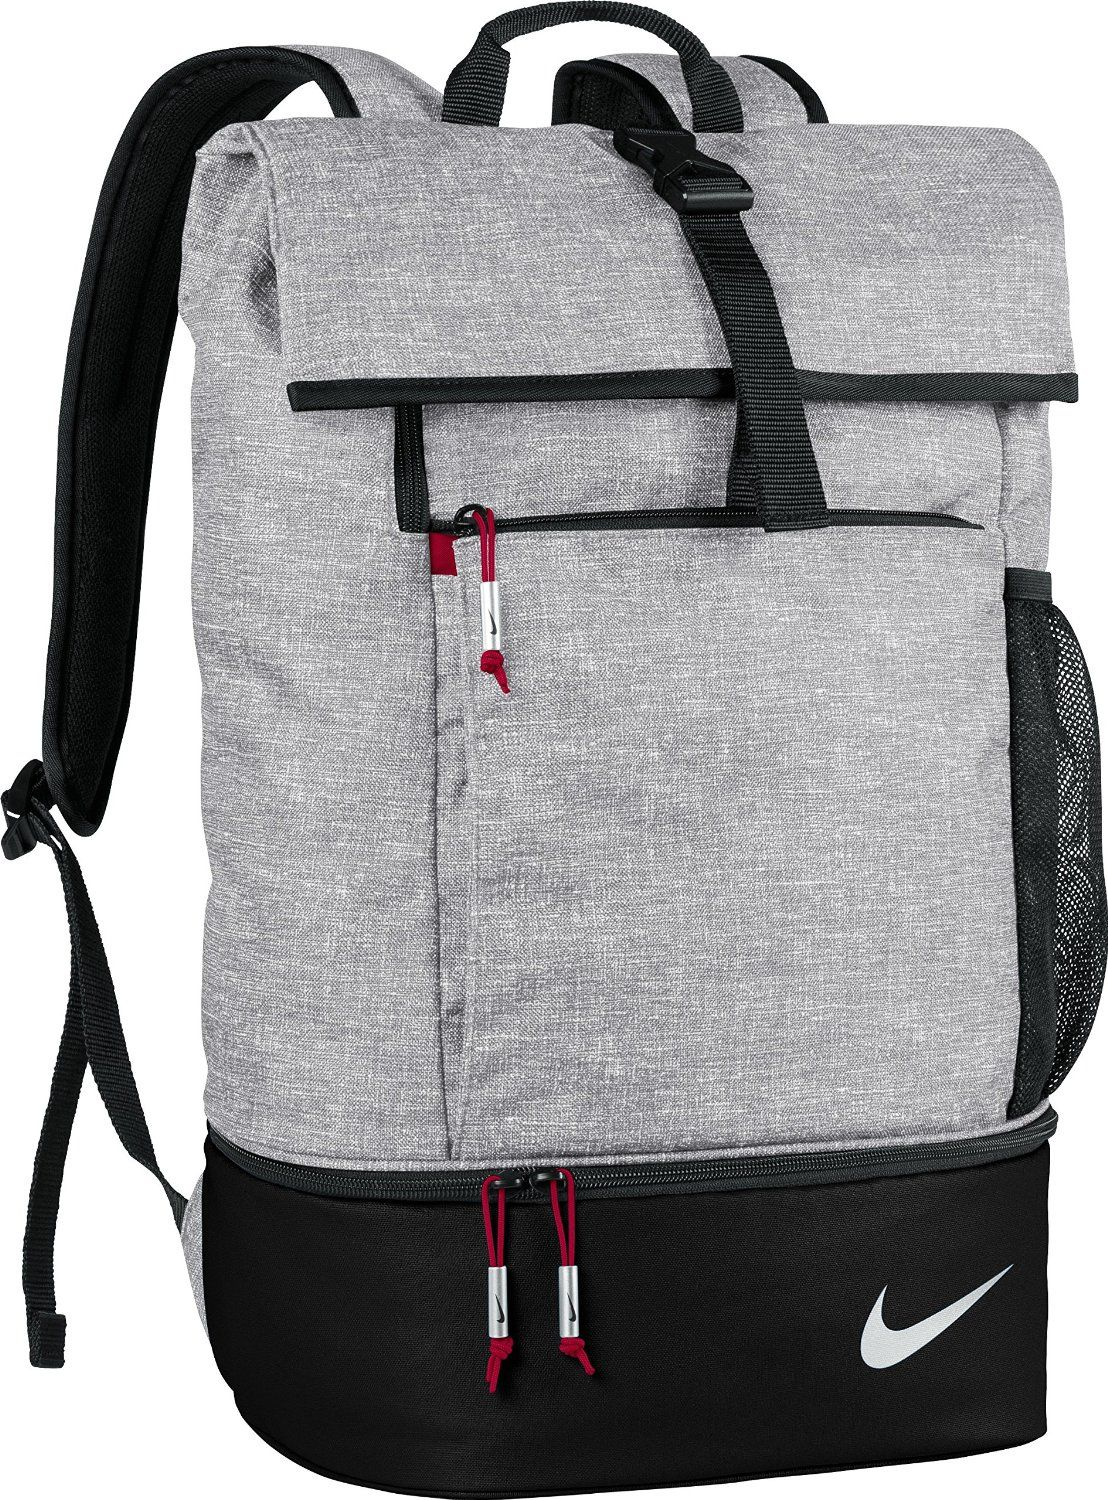 7b8b84b62c Nike Sport Gym Laptop Backpack Sale 50%. Now only  63.95